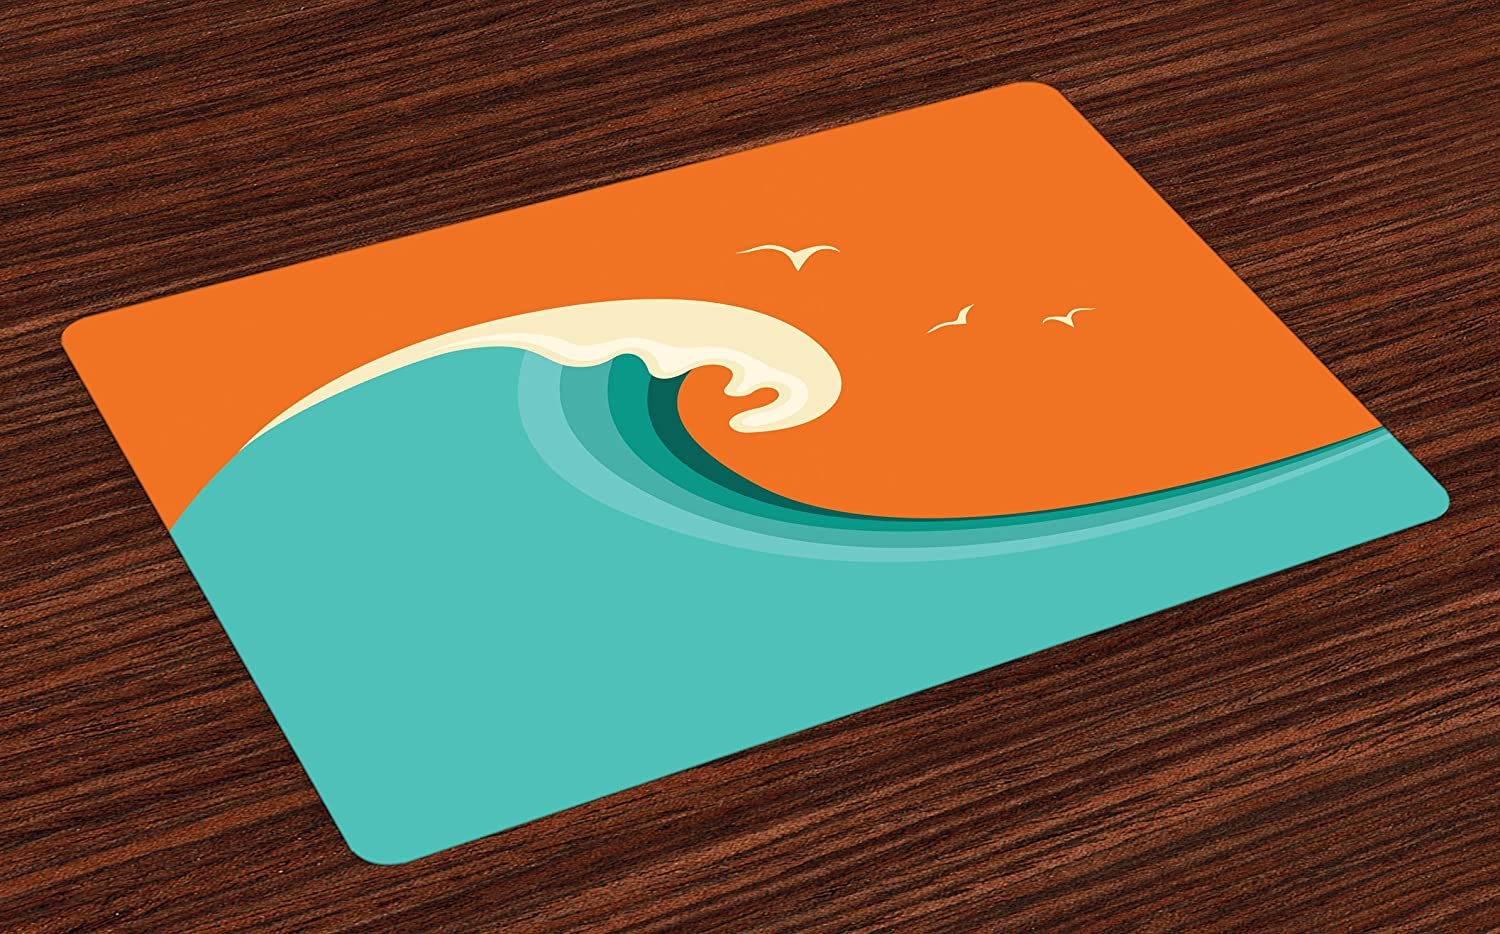 Lunarable Surf Place Mats Set of 4, Giant Wave with Seagull Silhouettes on a Warm Colored Background Cartoon, Washable Fabric Placemats for Dining Room Kitchen Table Decor, Orange Cream Turquoise